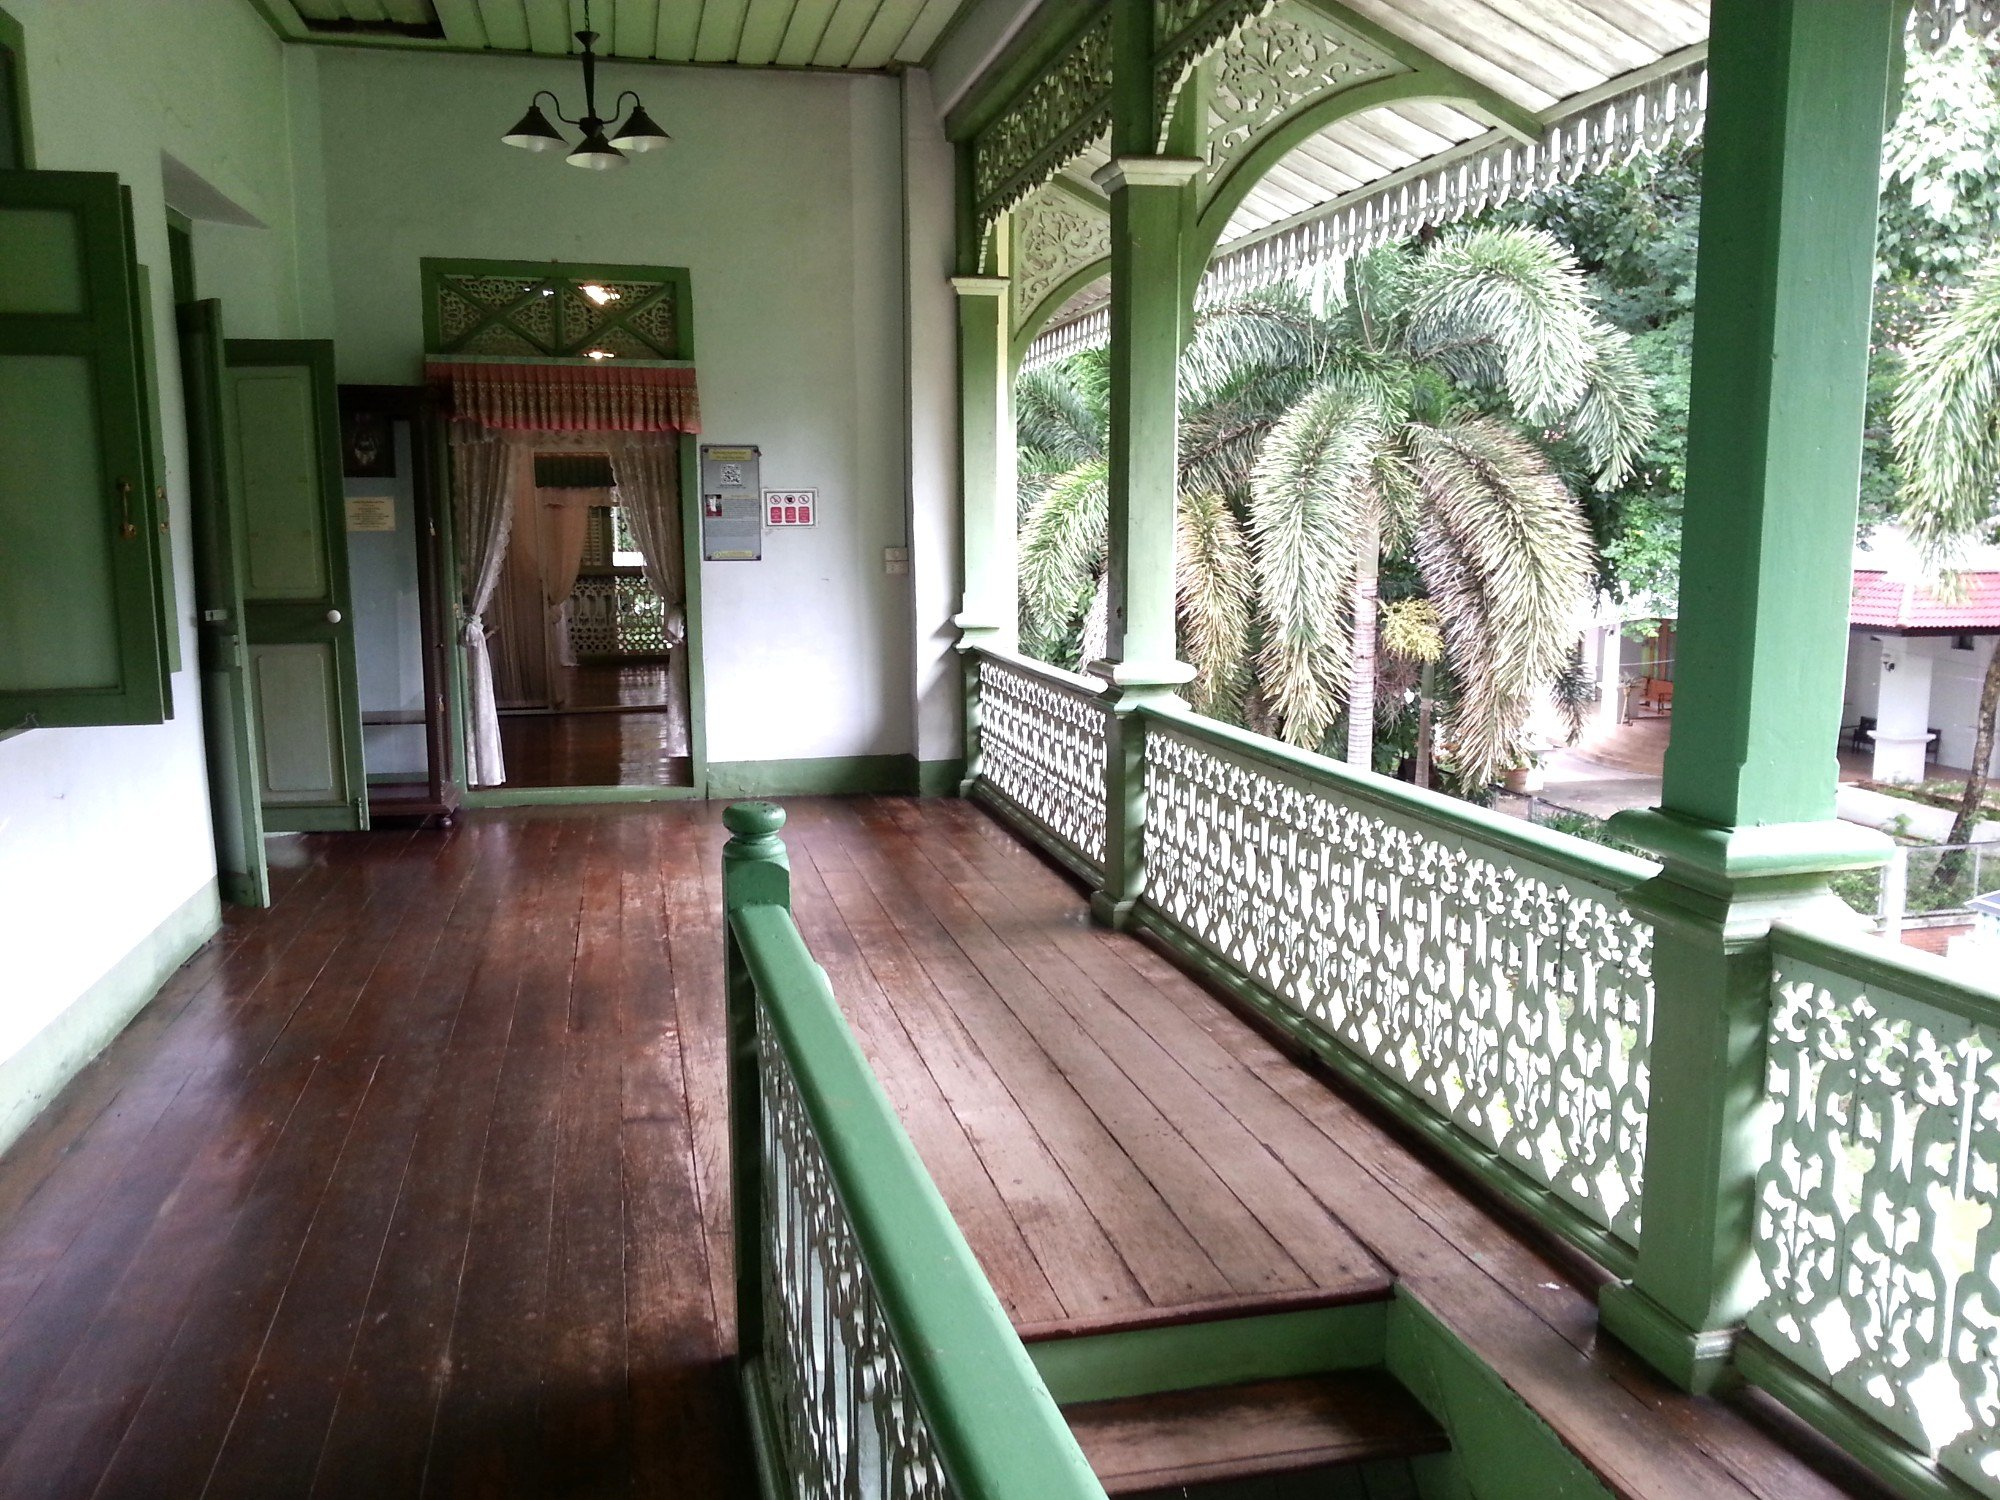 Upstairs balcony at the Khum Chao Luang Museum